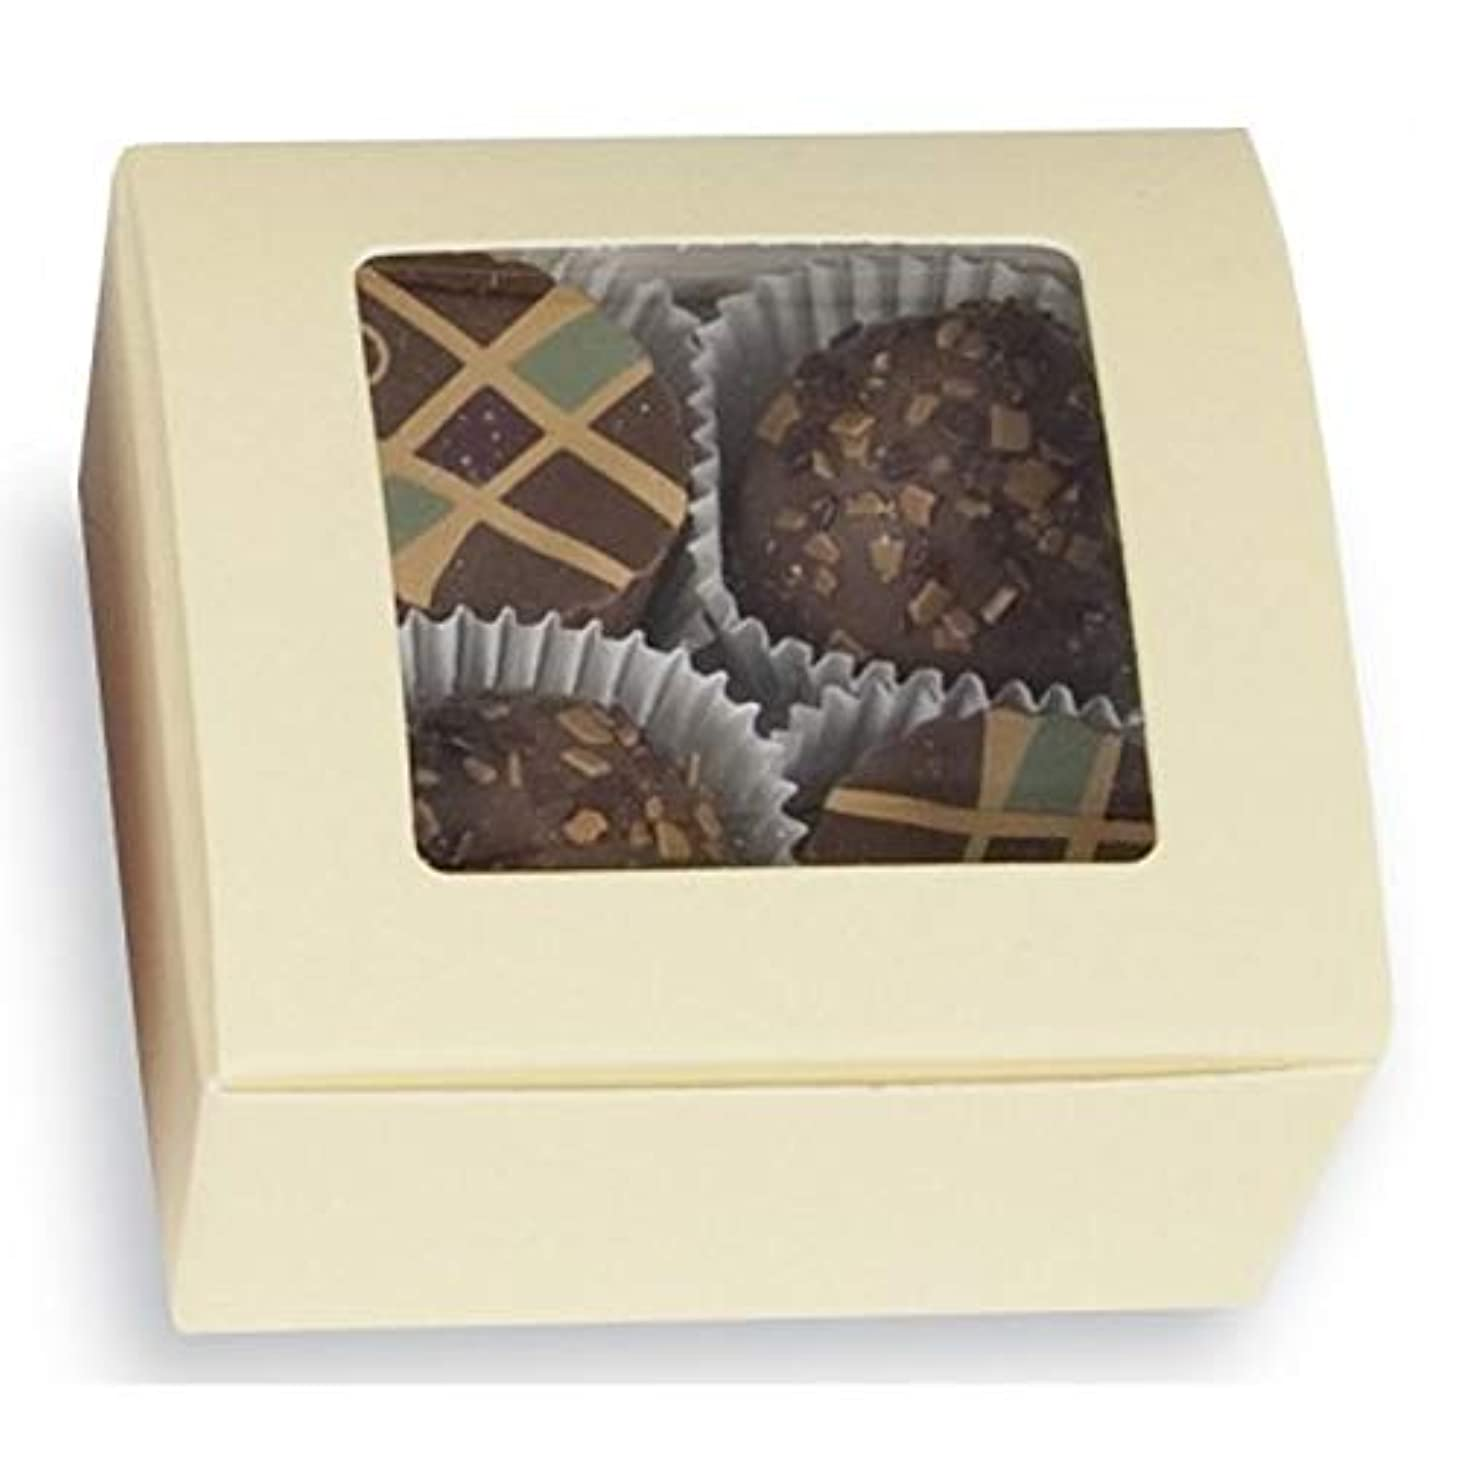 Cream Square 4 pc. Truffle Boxes with Window - 2 5/8 x 2 1/2 x1 1/4in. (25)